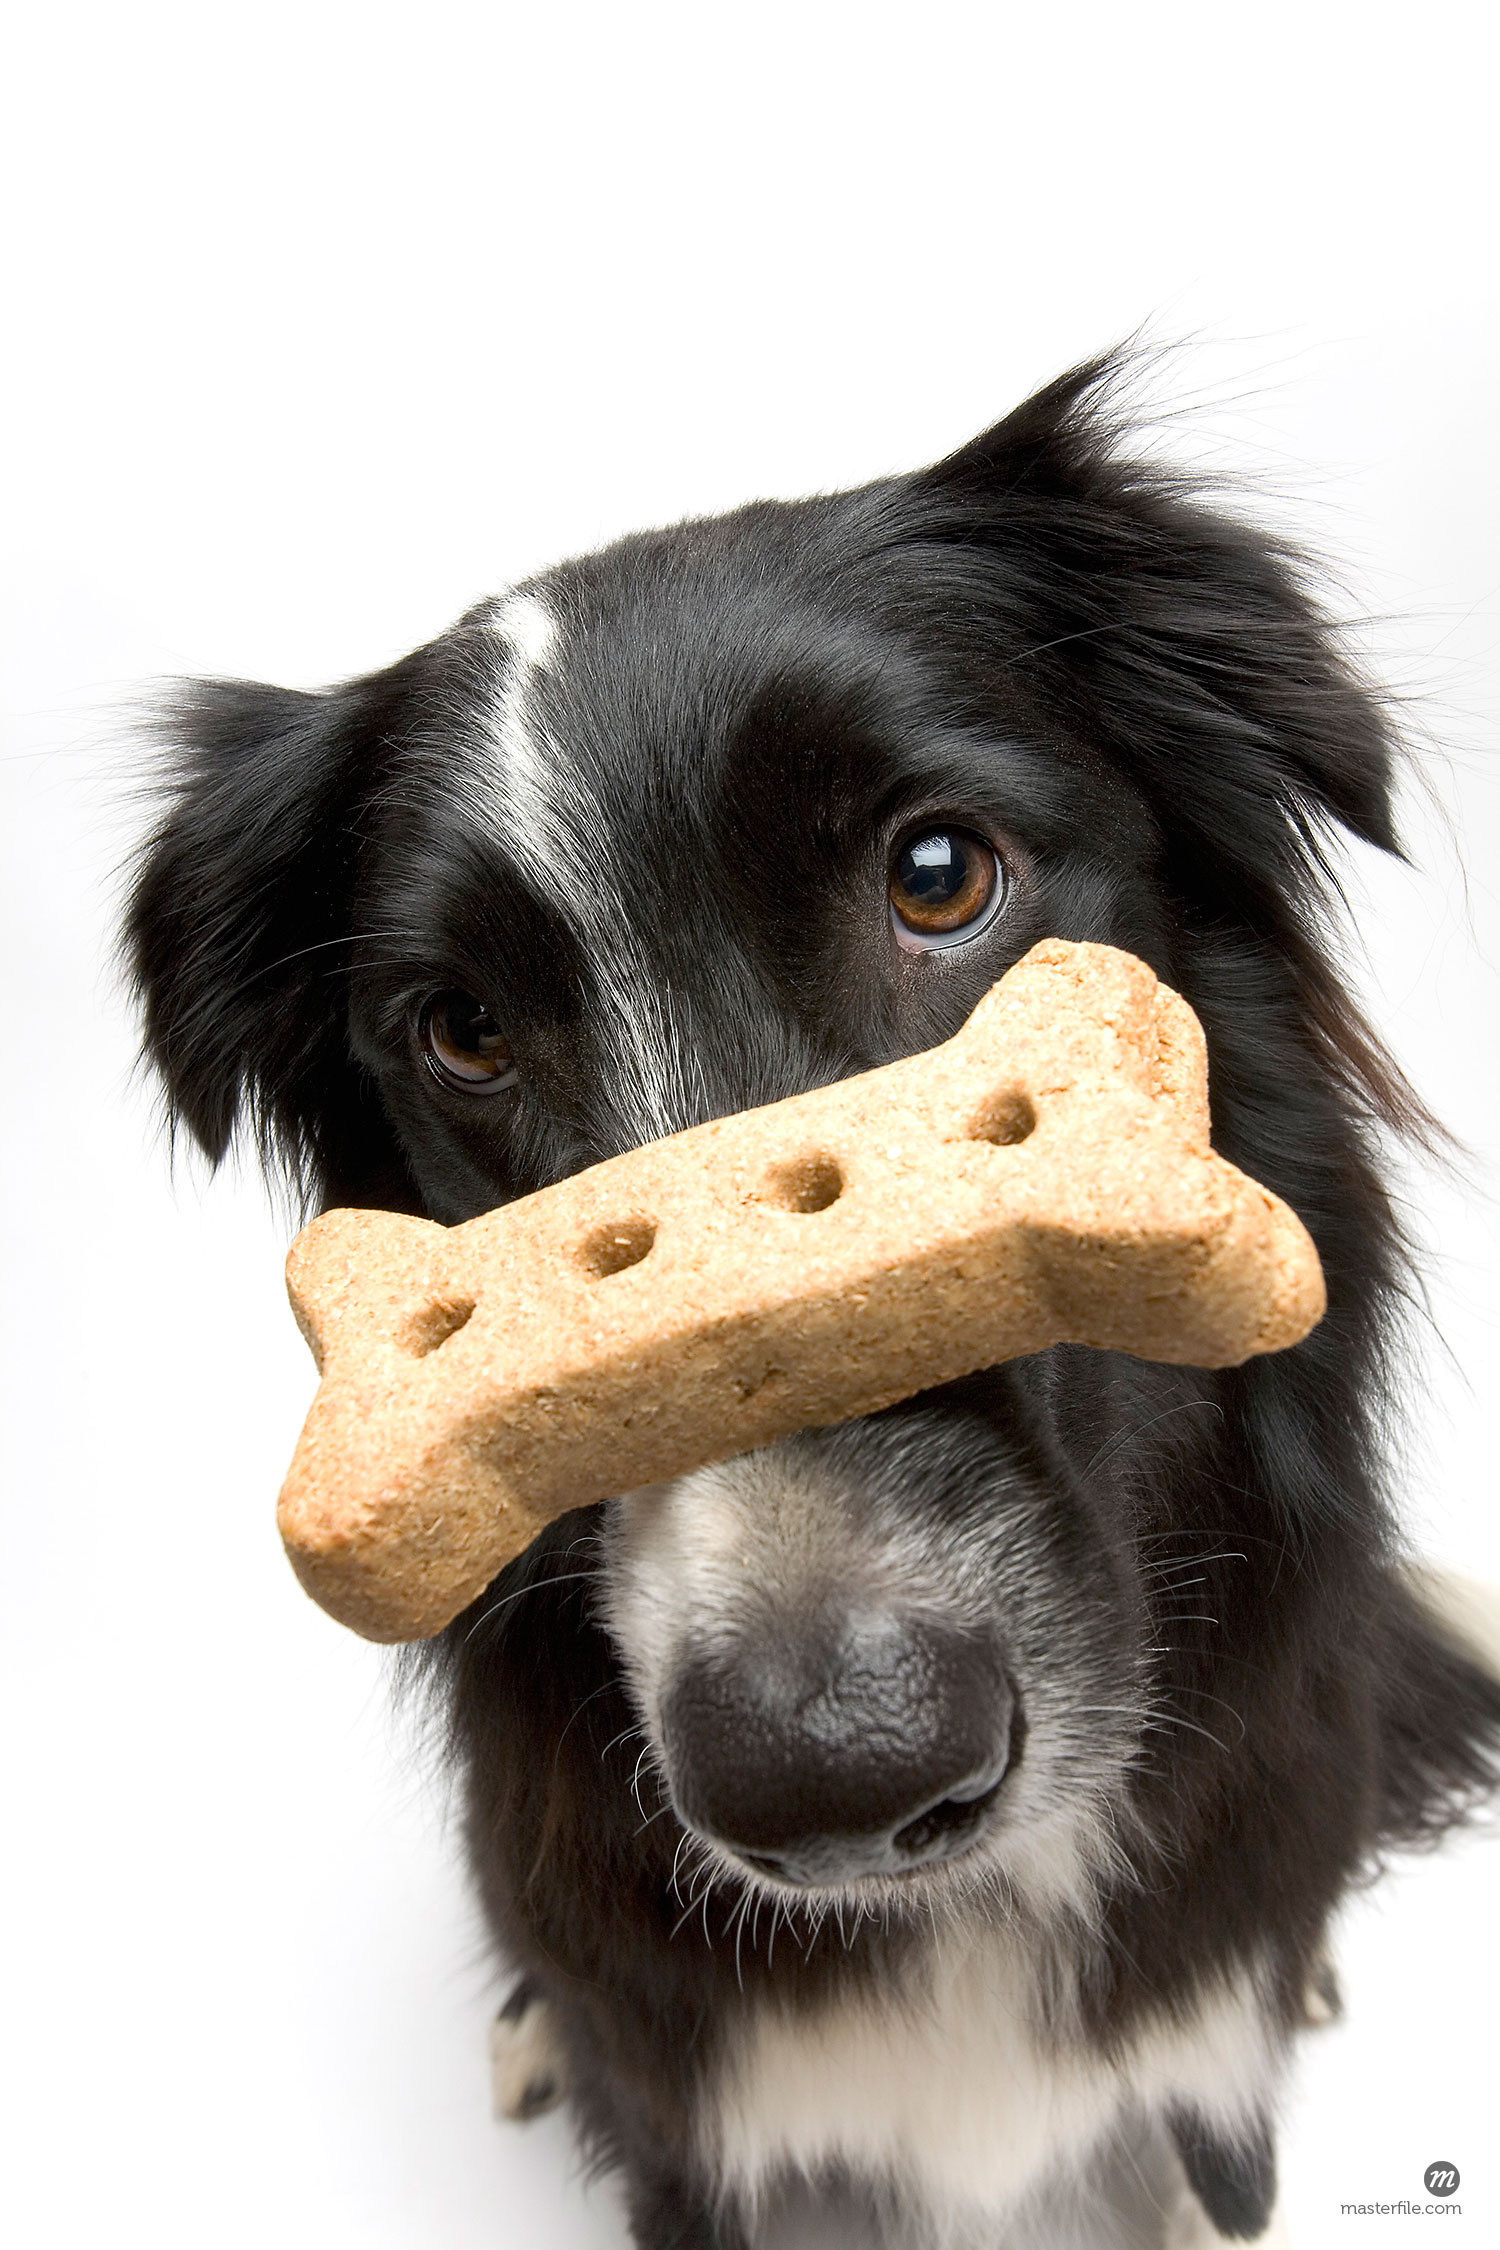 Portrait of dog with treat balanced on his nose  © Michael Eudenbach / Masterfile